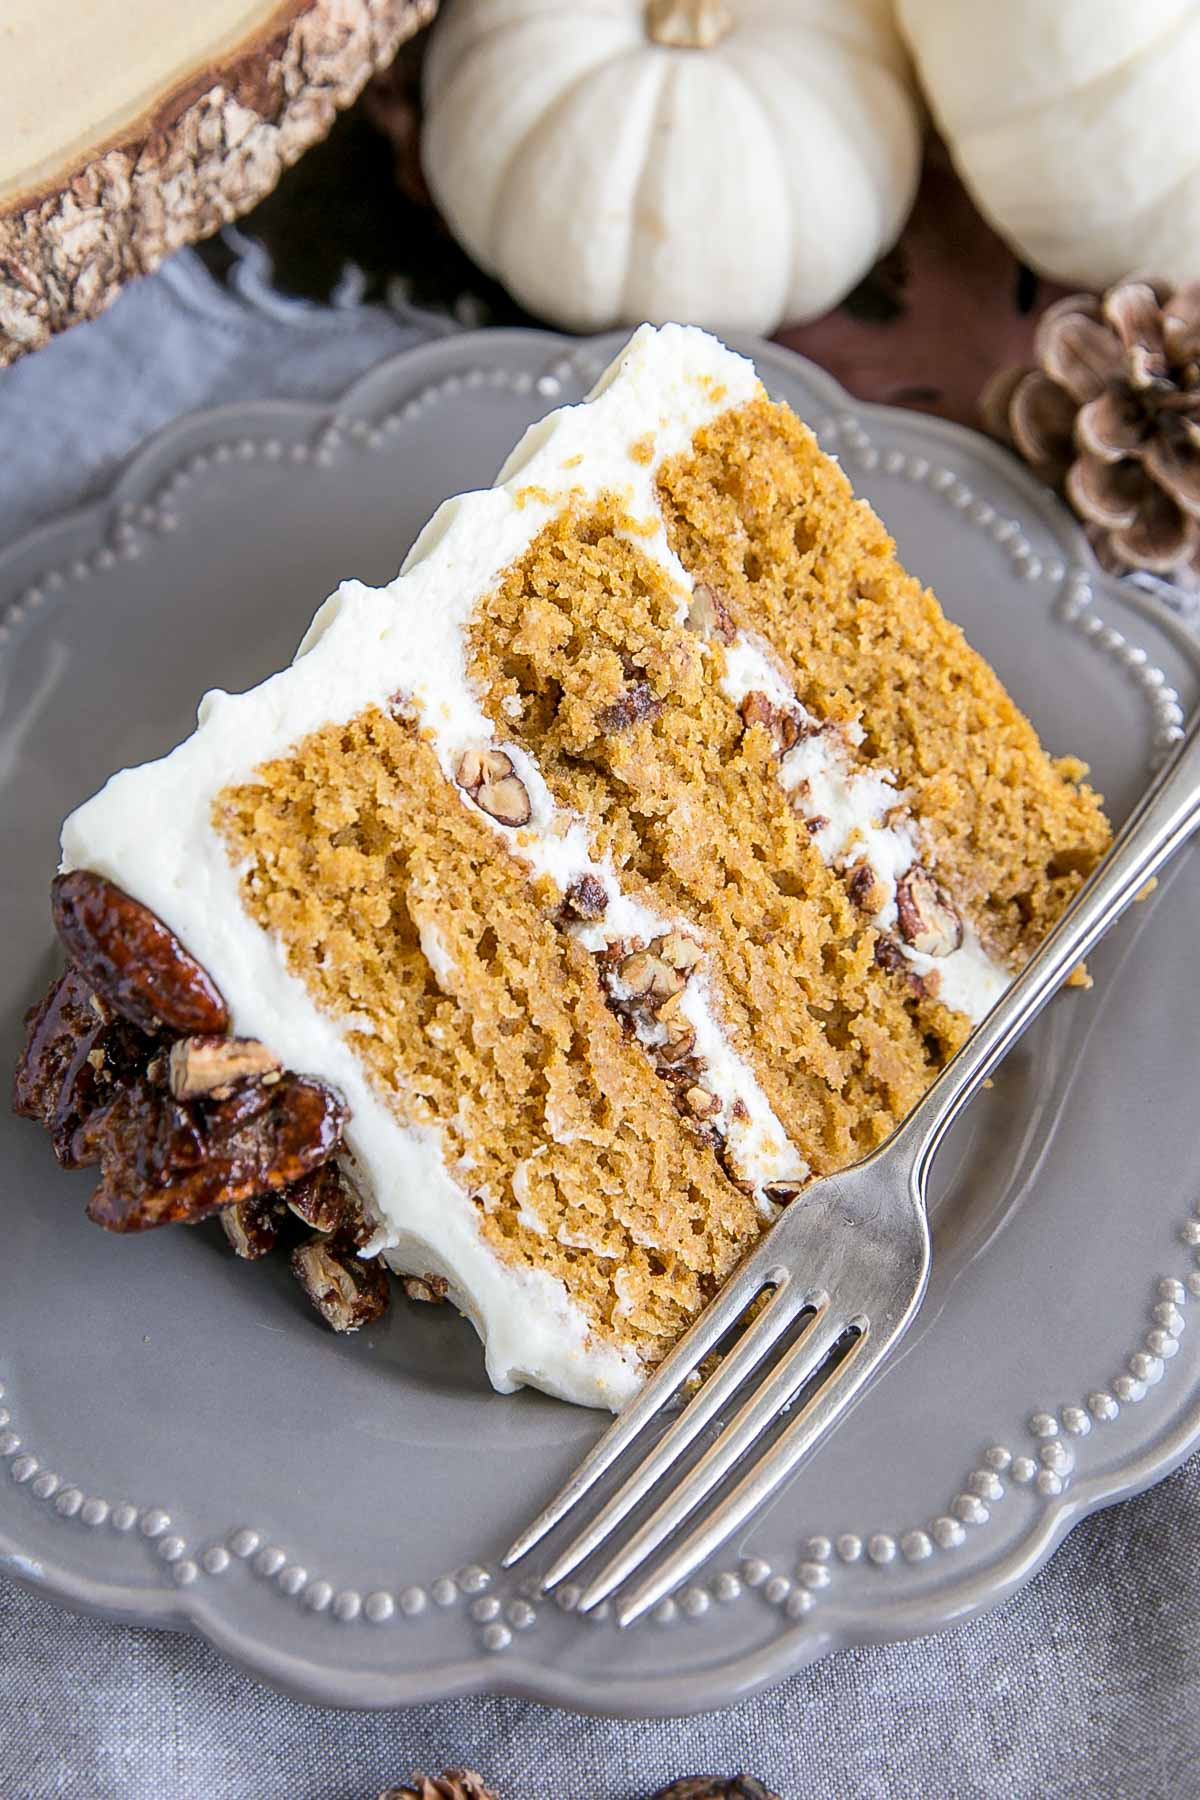 Slice of pumpkin cake -- three layers of cake with candied pecans and cream cheese frosting.